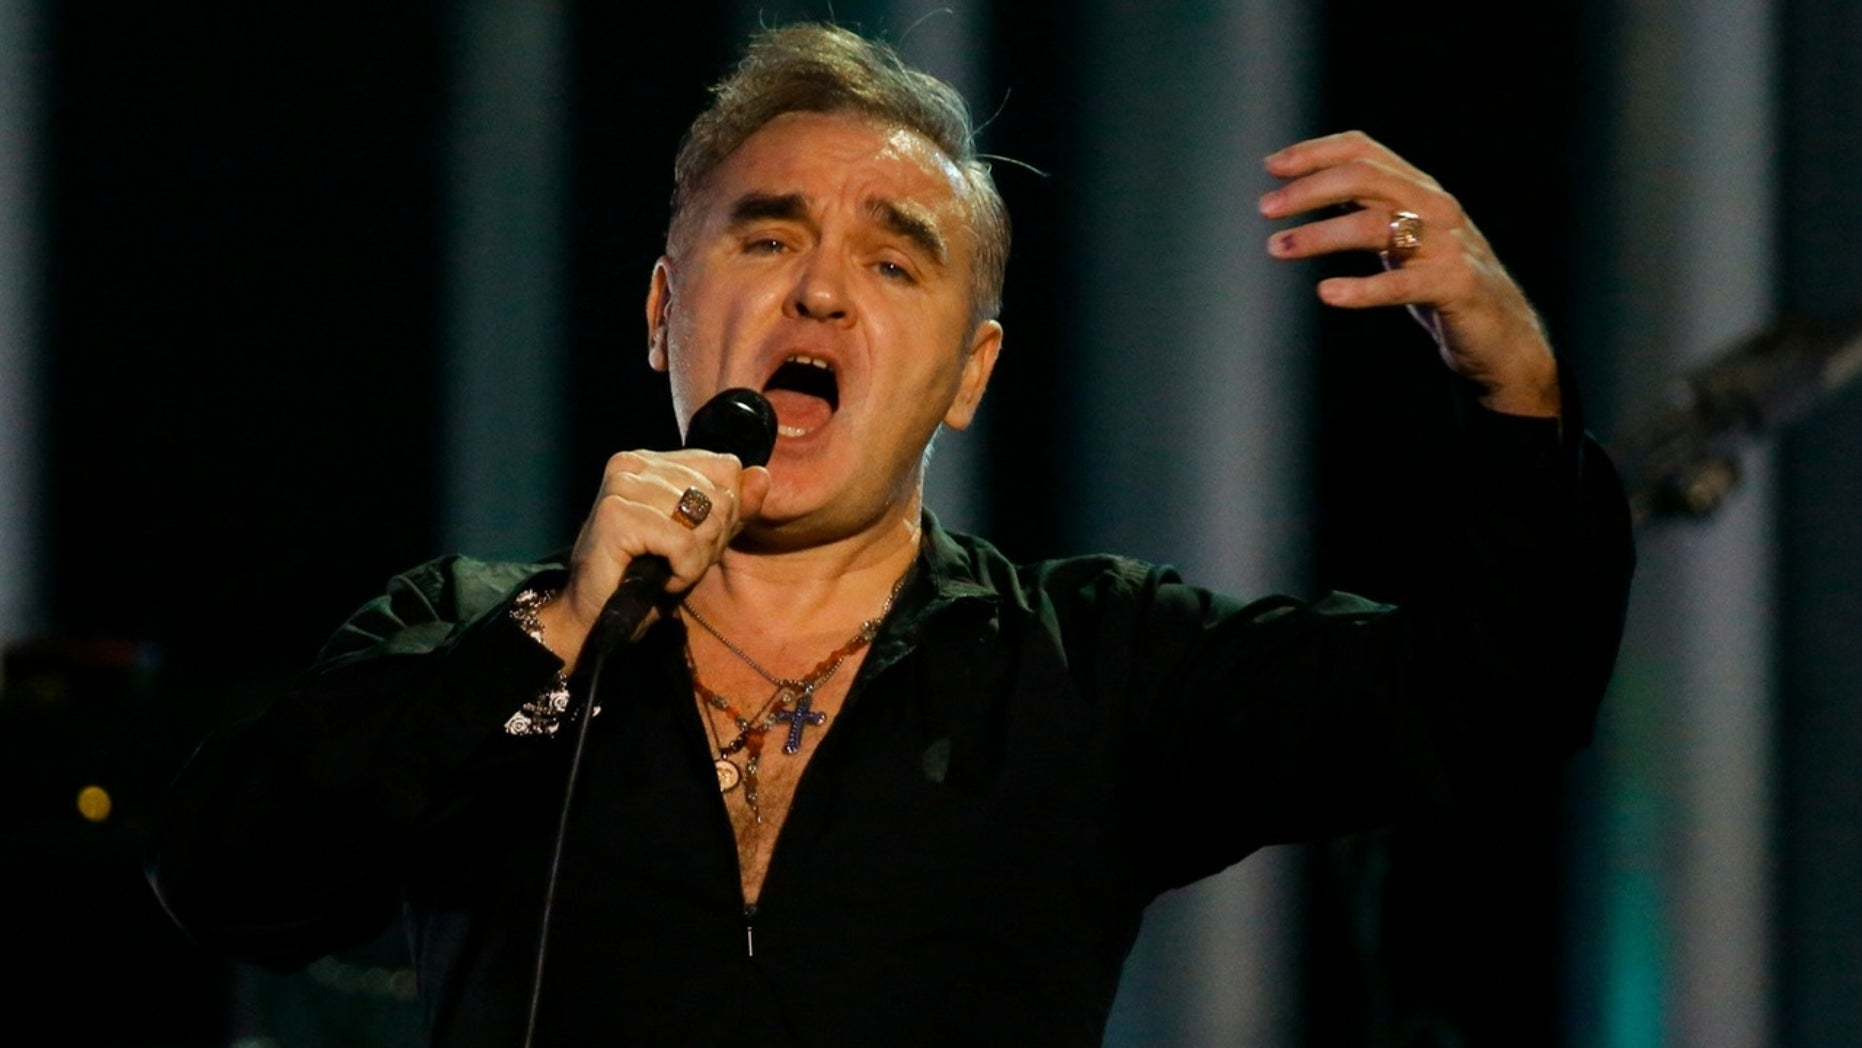 """Morrissey said in a bizarre interview that producers of halal meat could only get their certification from """"supporters of ISIS. """""""